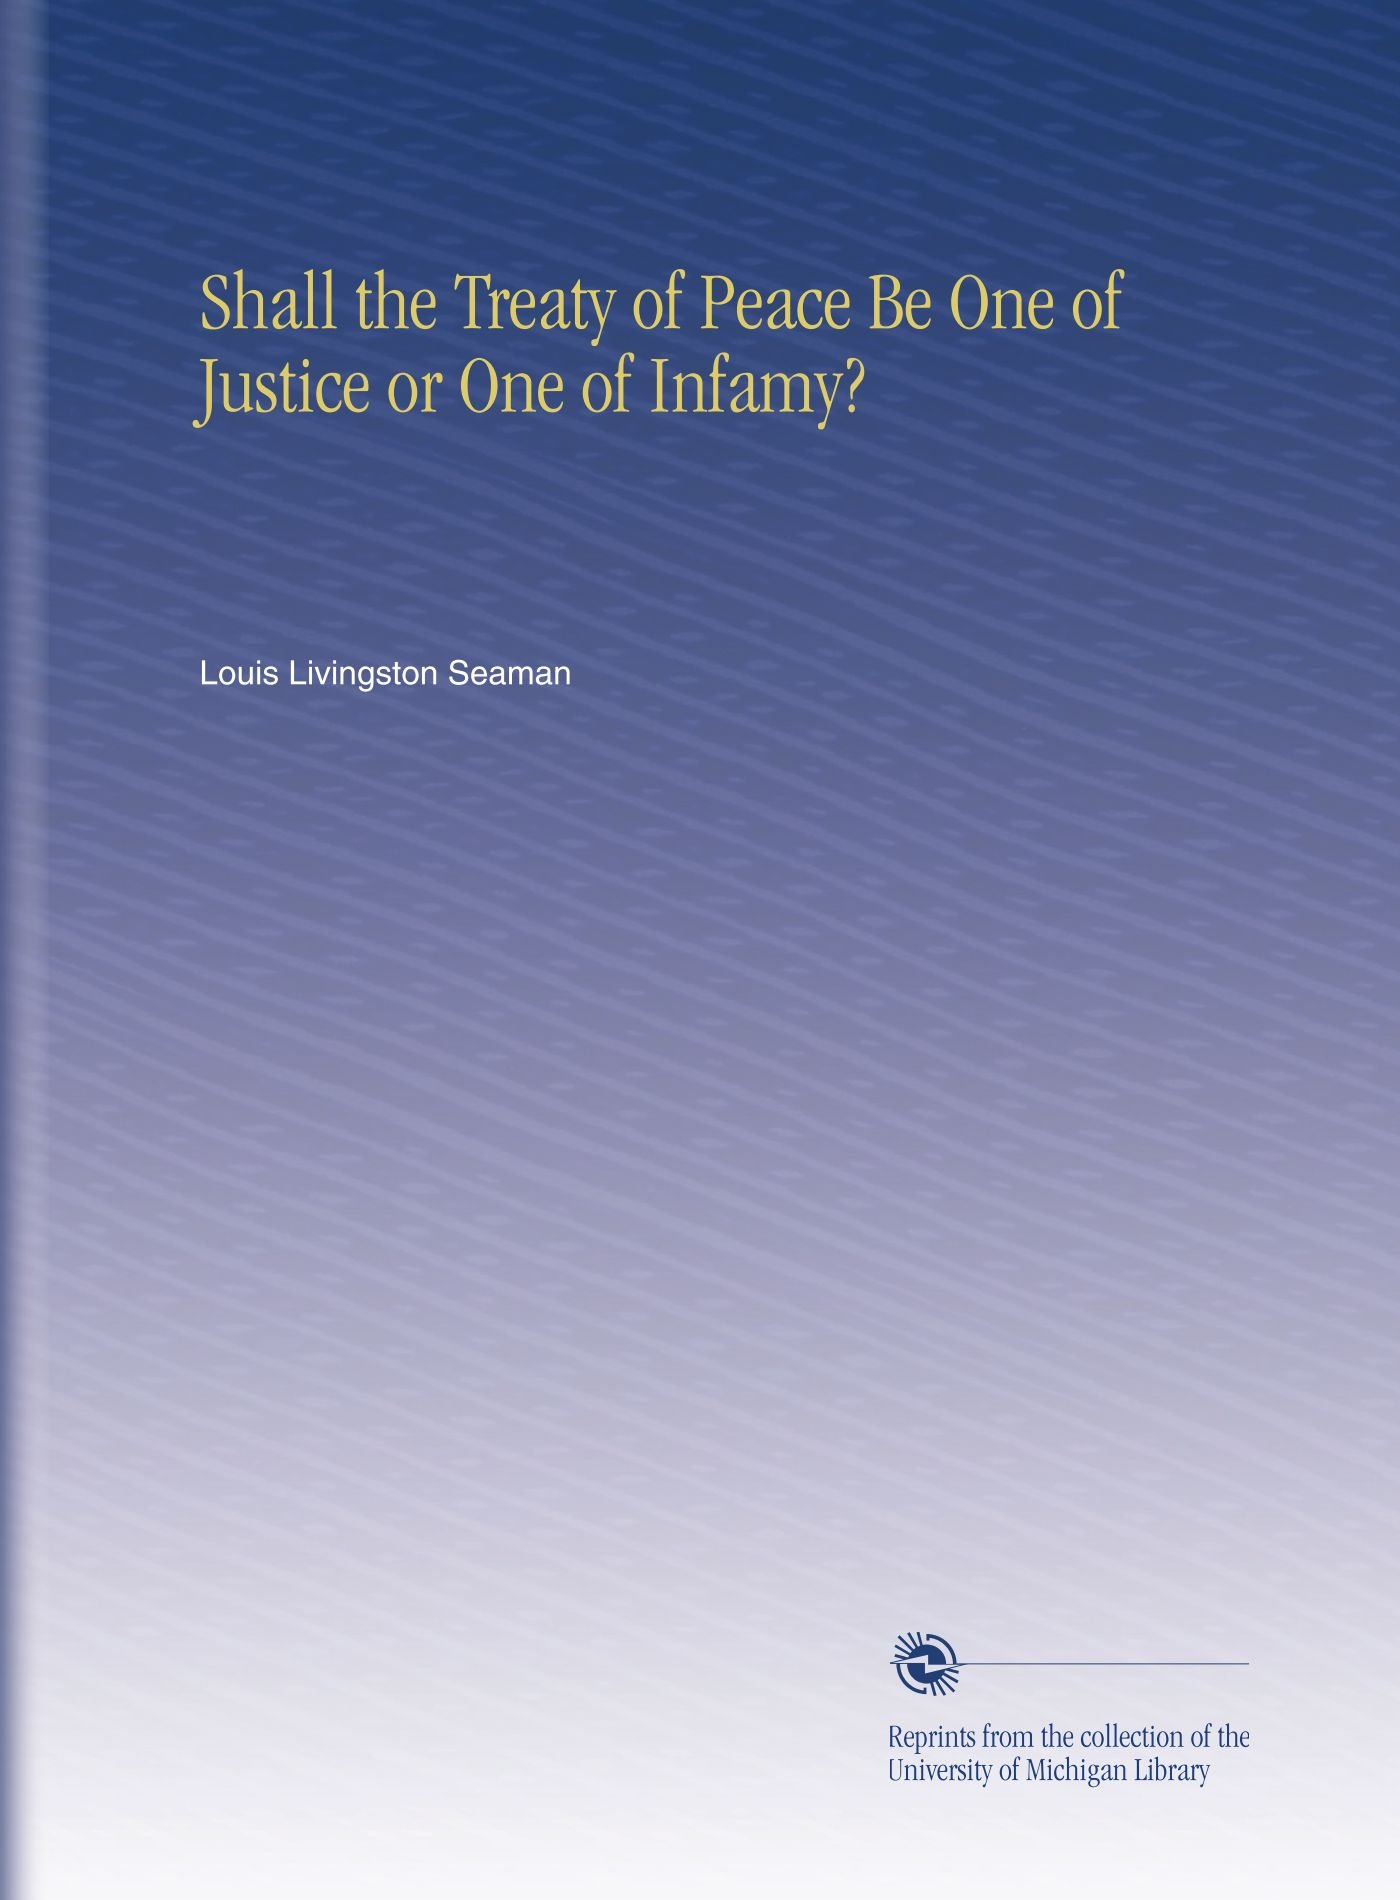 Download Shall the Treaty of Peace Be One of Justice or One of Infamy? pdf epub